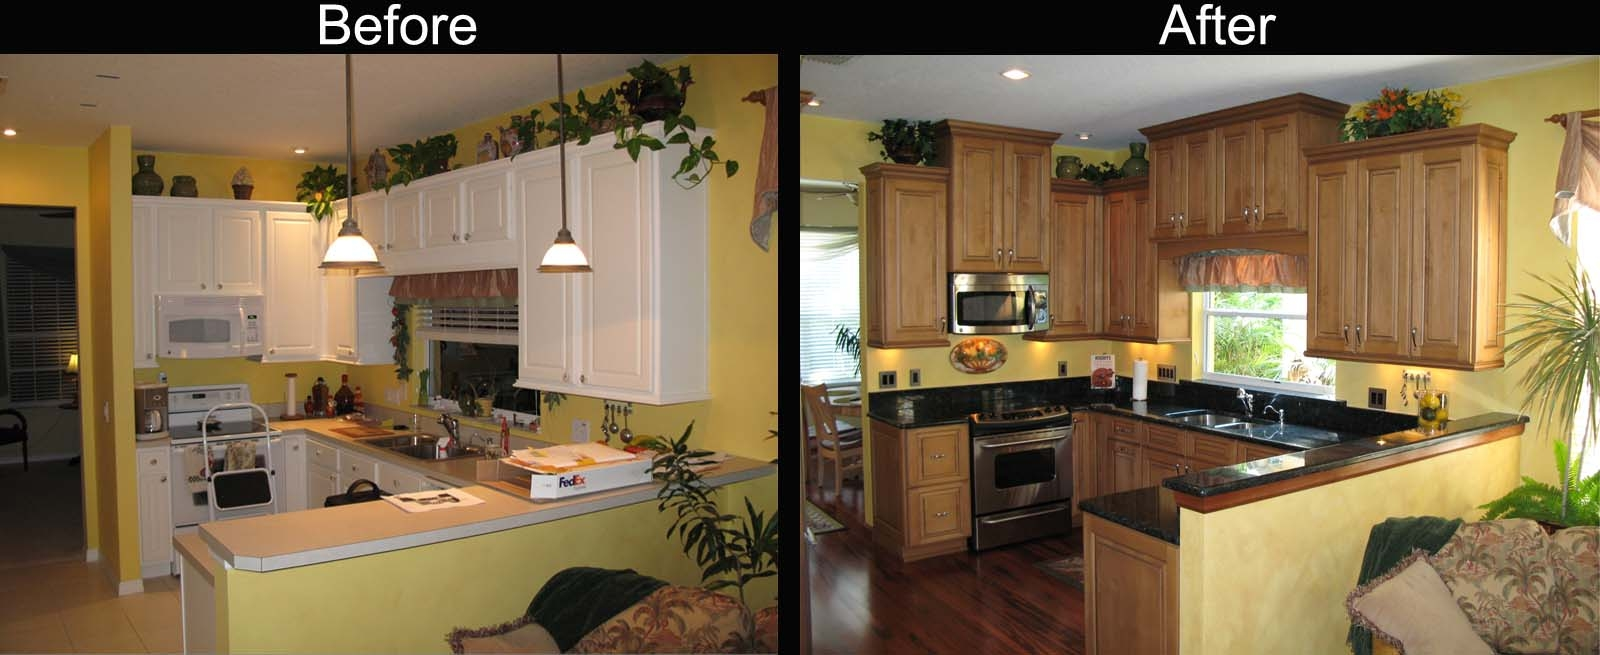 Kitchen Cabinets Remodel Before And After